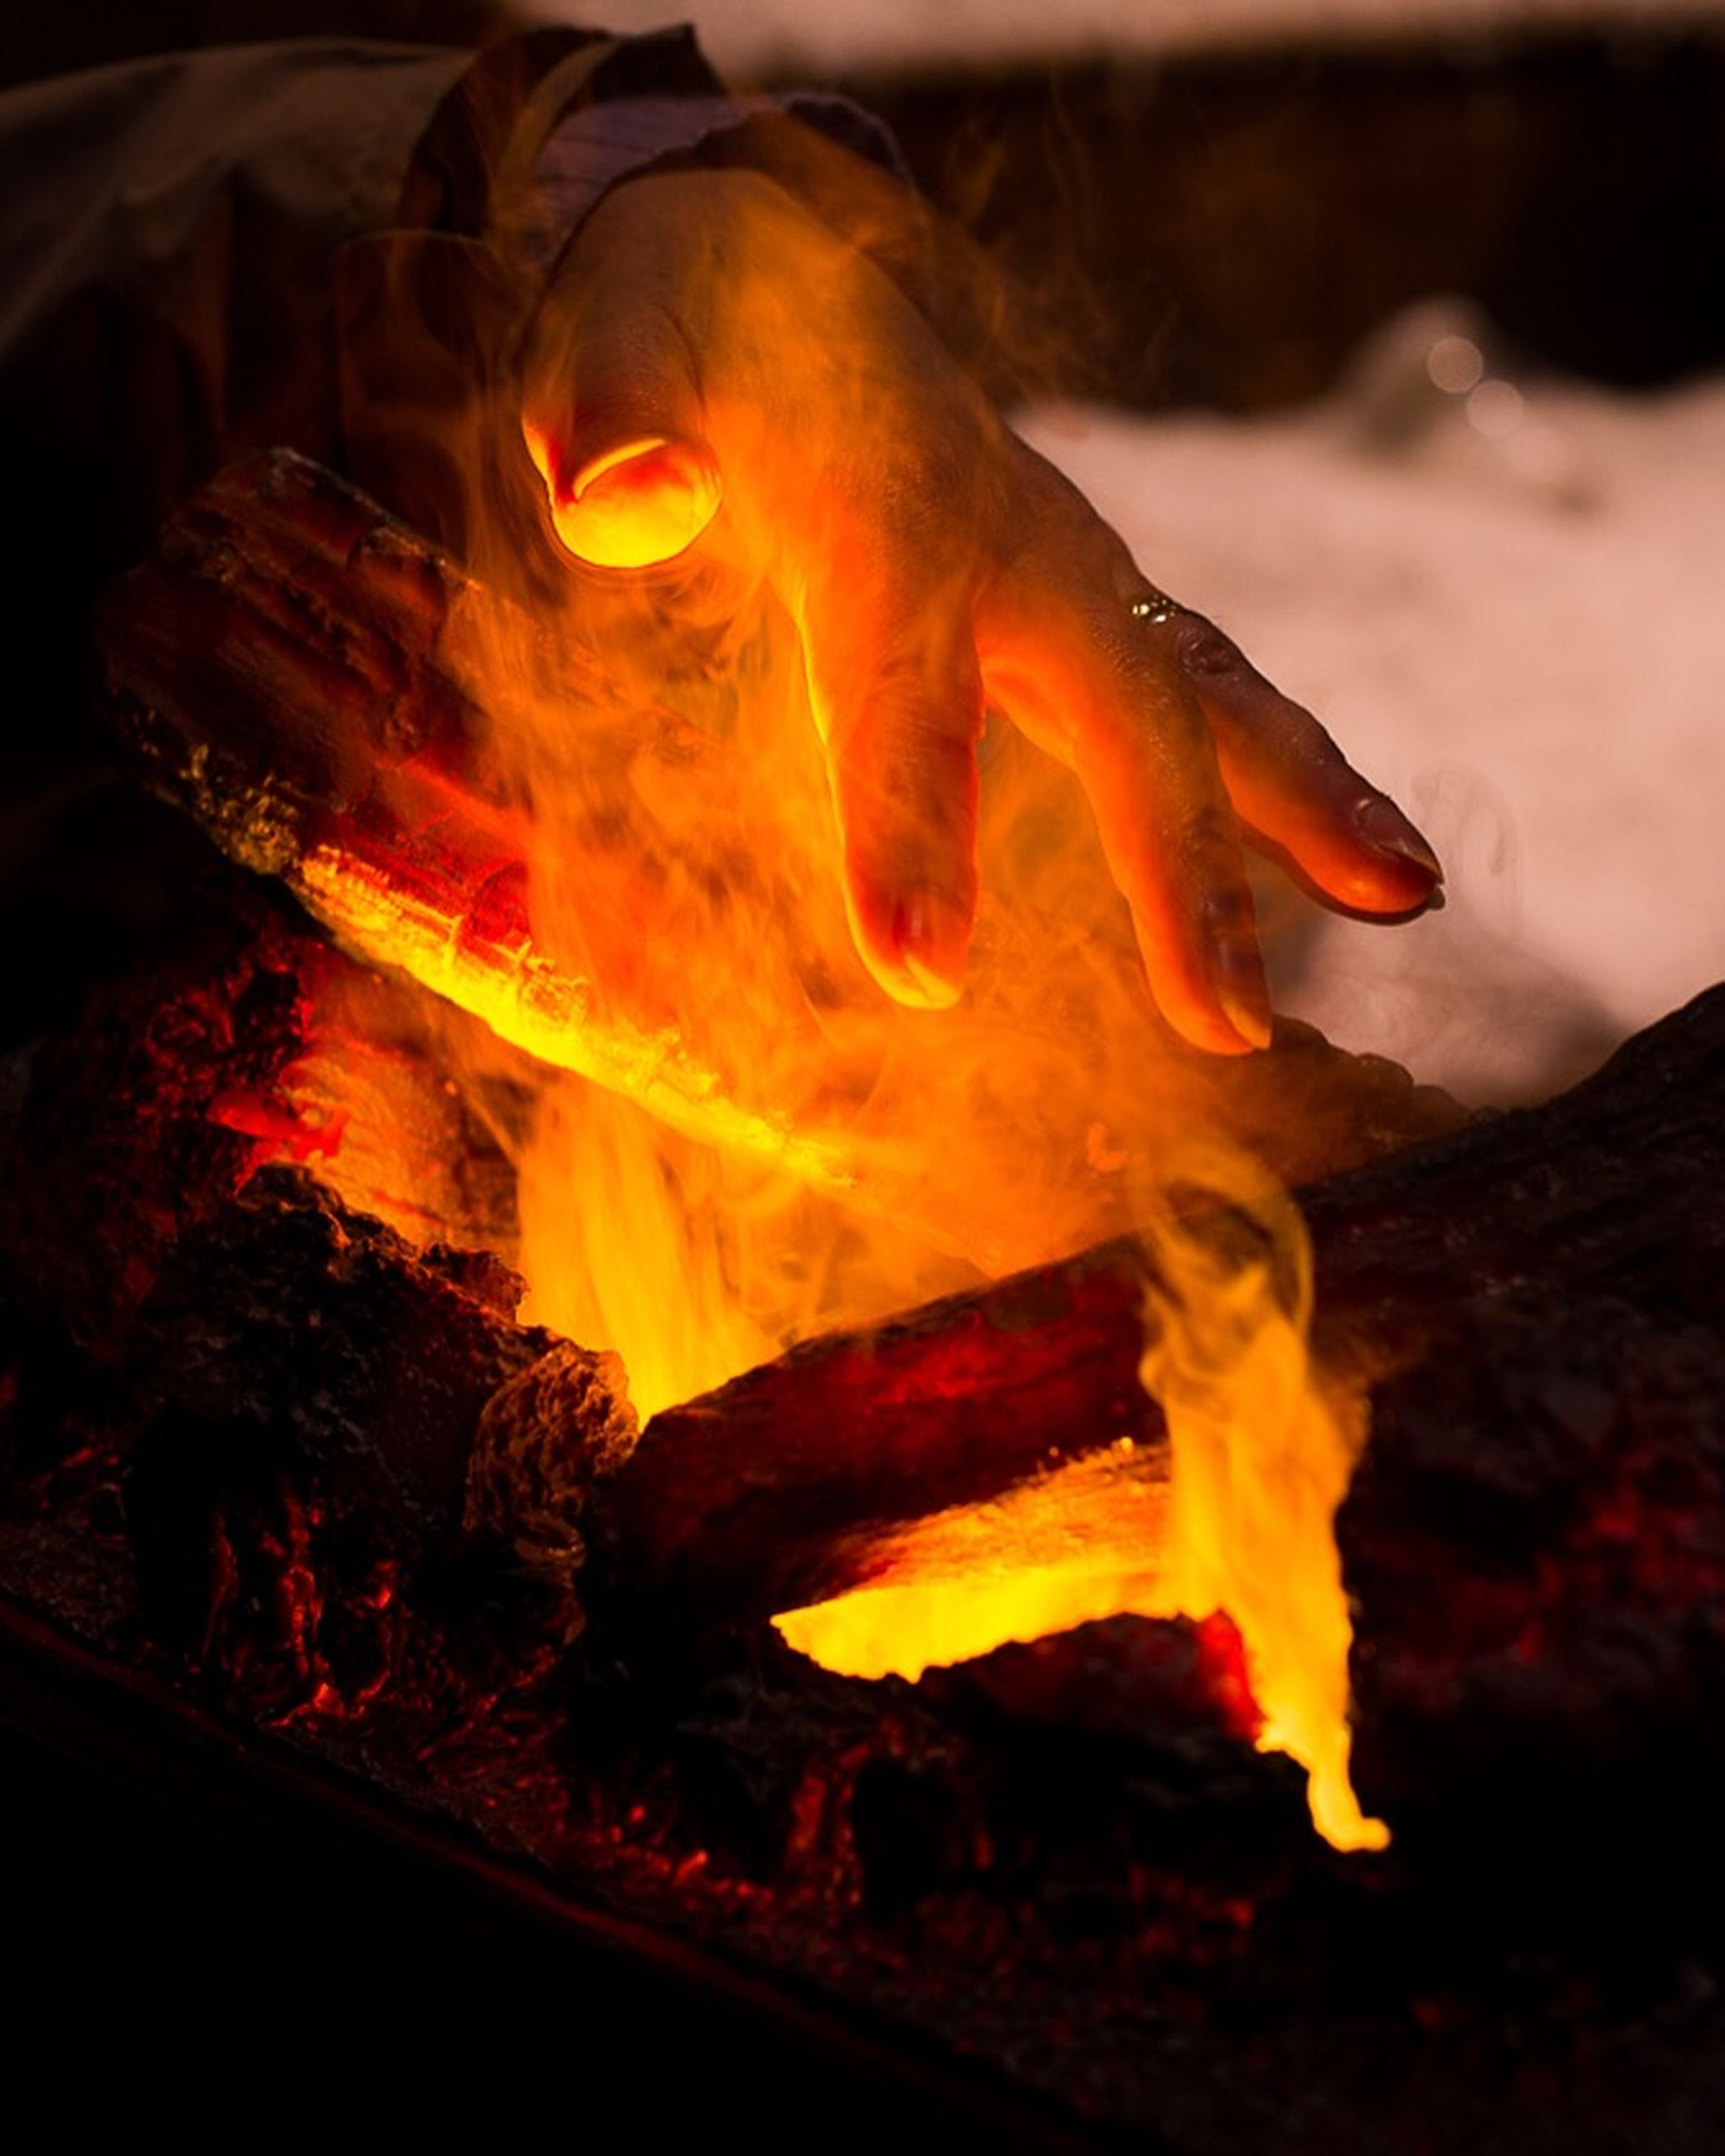 flame, burning, heat - temperature, fire - natural phenomenon, bonfire, fire, campfire, glowing, heat, close-up, indoors, night, firewood, orange color, men, danger, high angle view